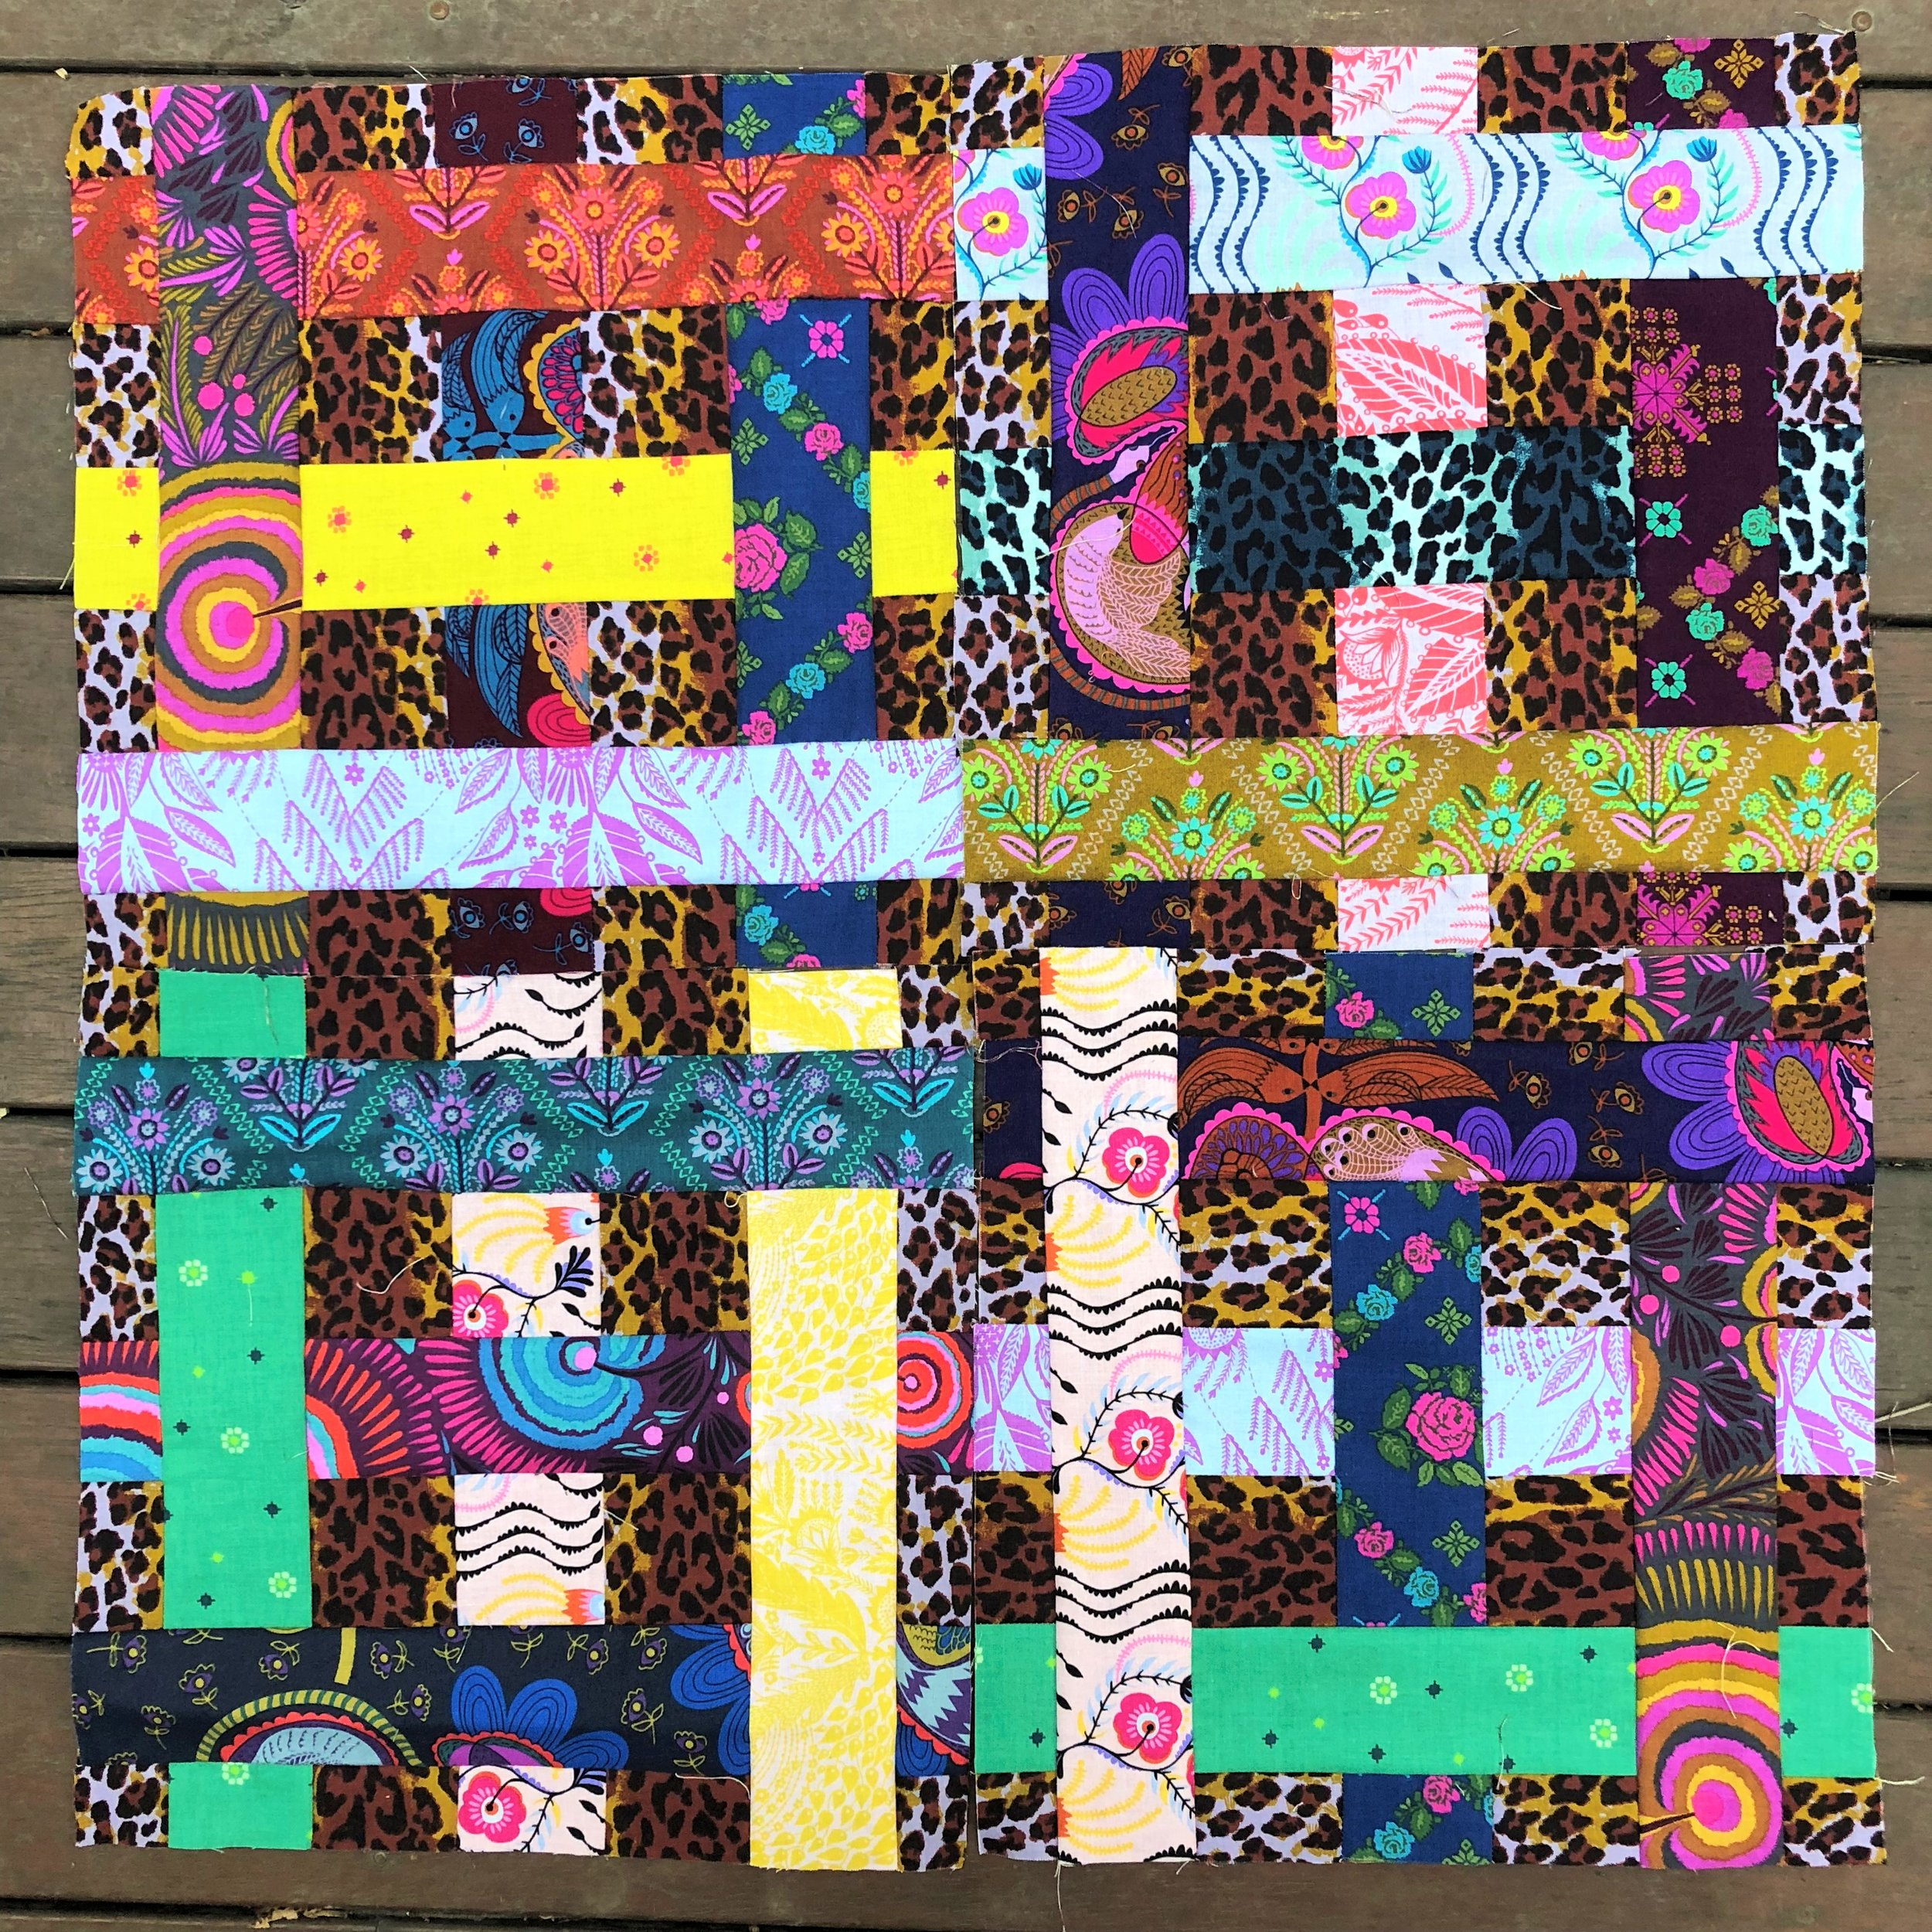 CLICK ON THE IMAGE TO FIND THE FREE SIMPLY WOVEN QUILT PATTERN